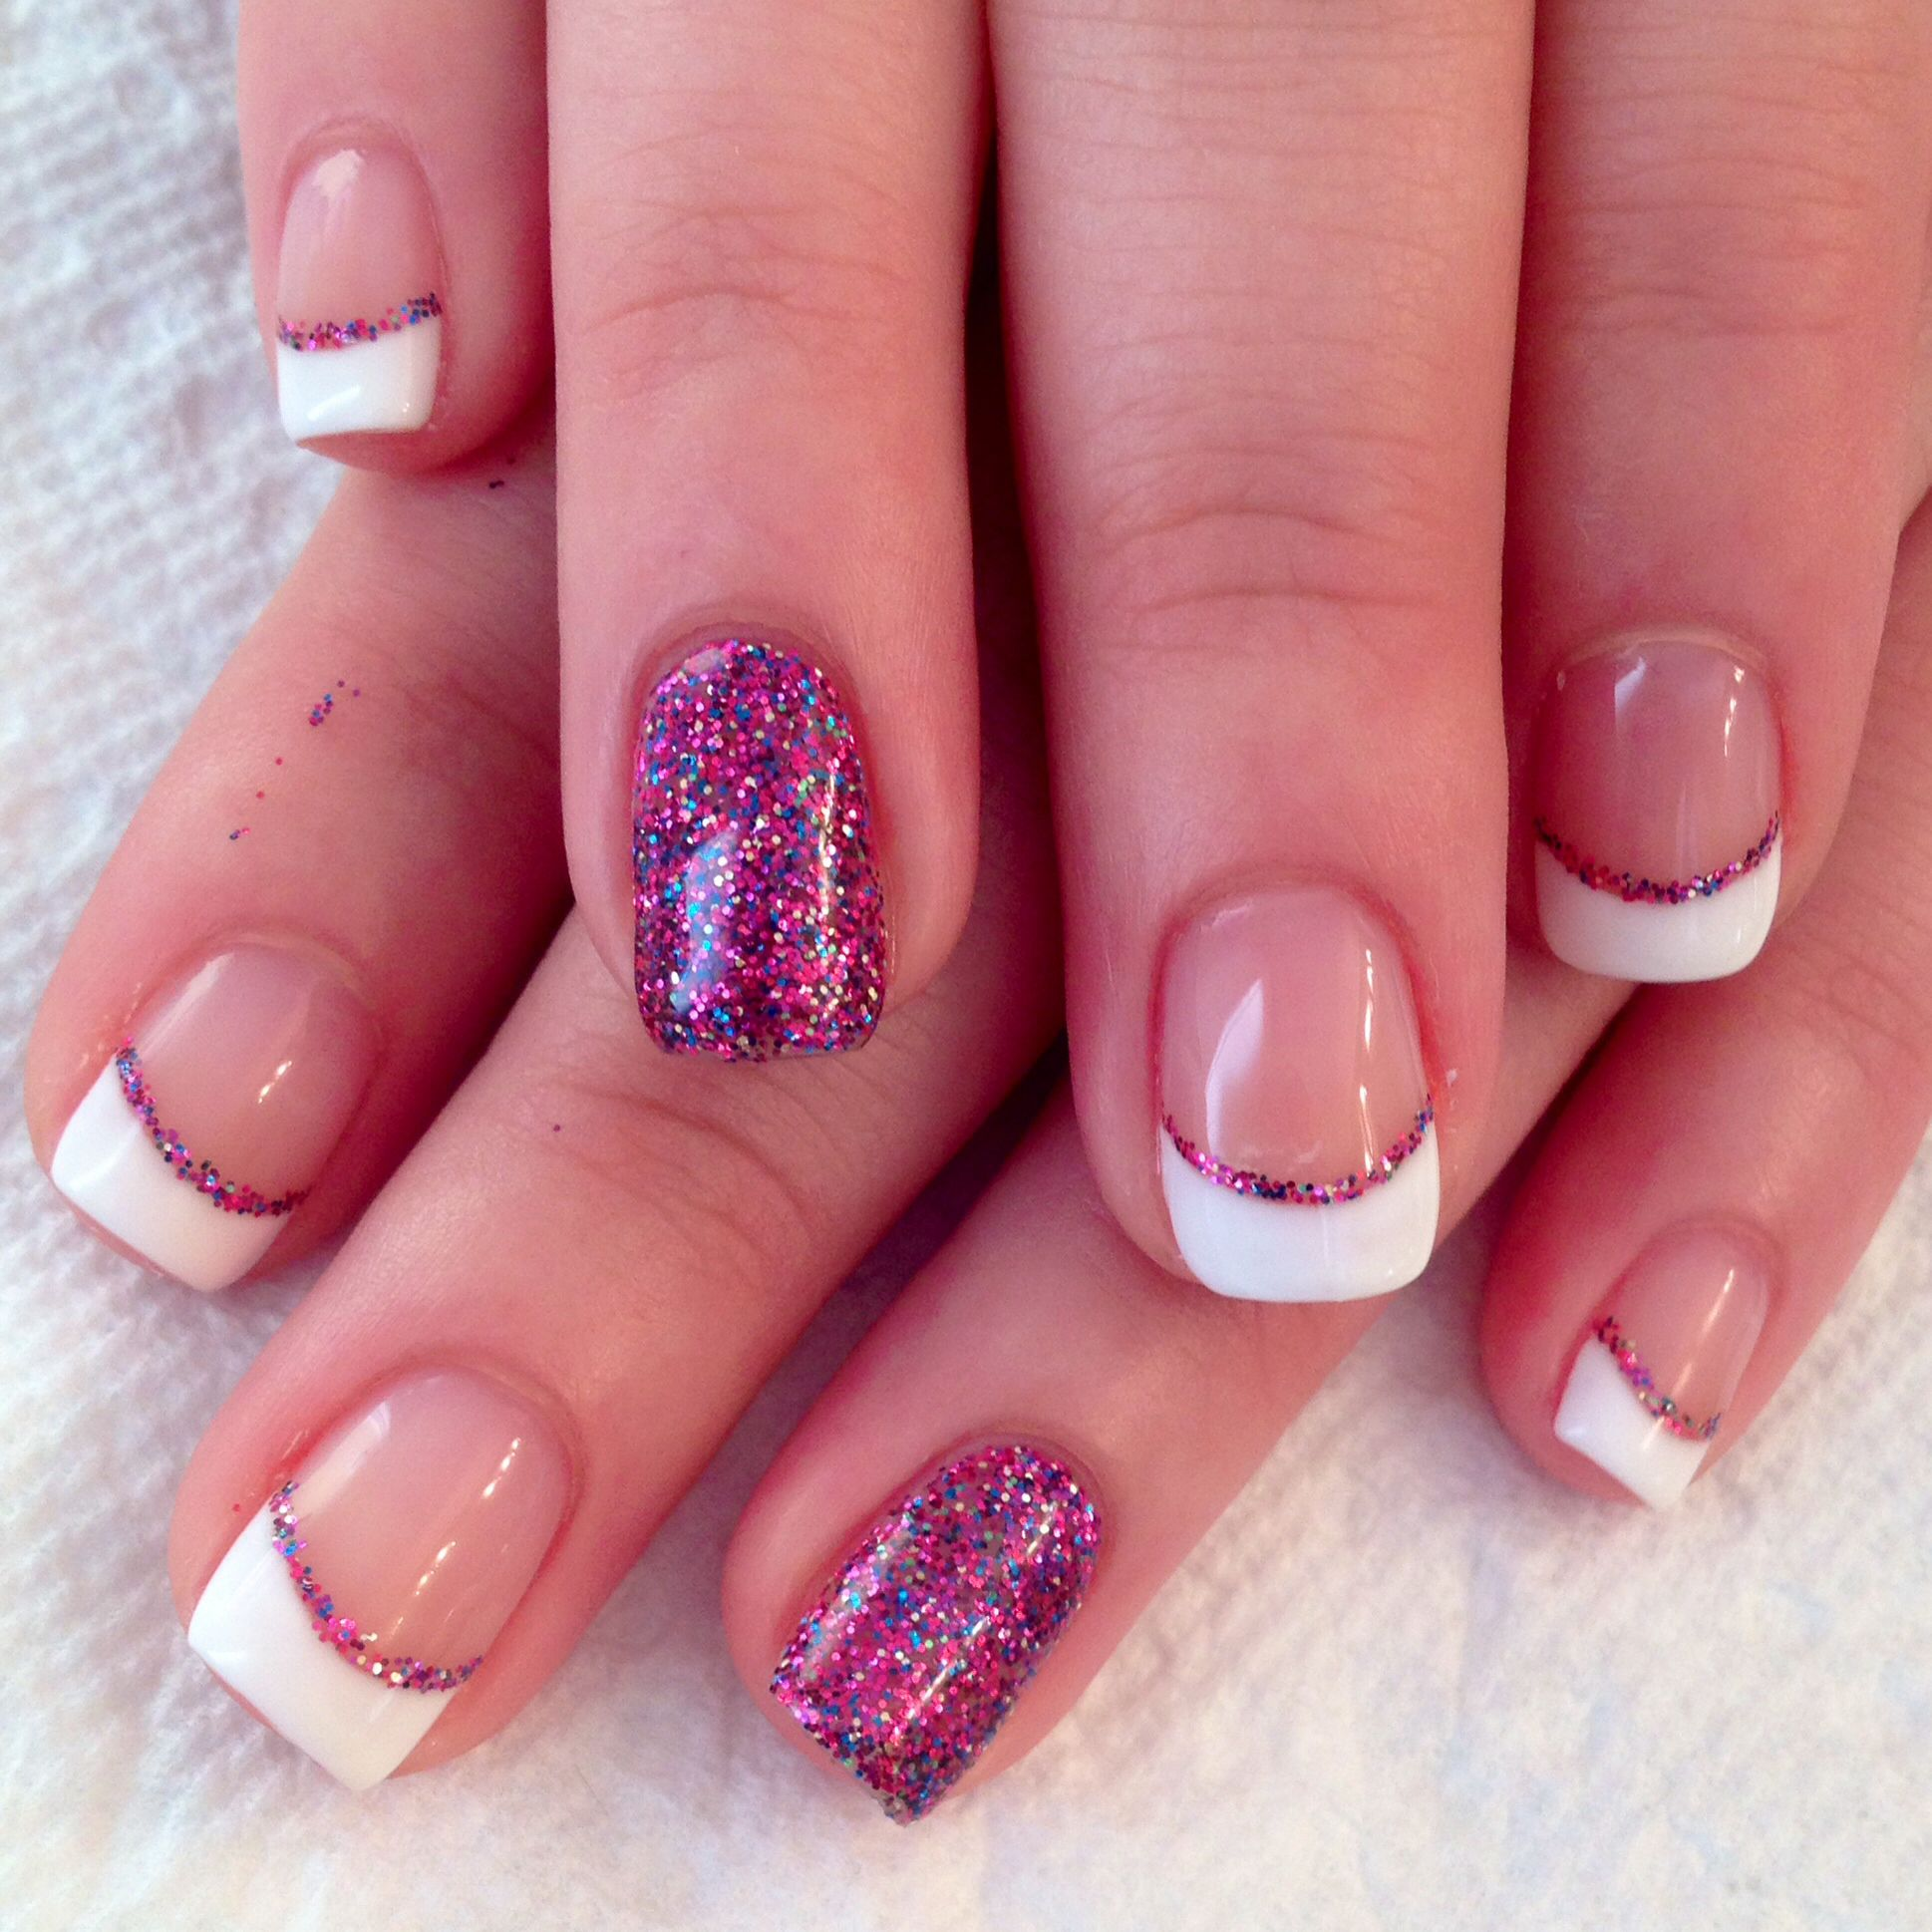 French manicure with glitter accent nails in gelish | Nails ...